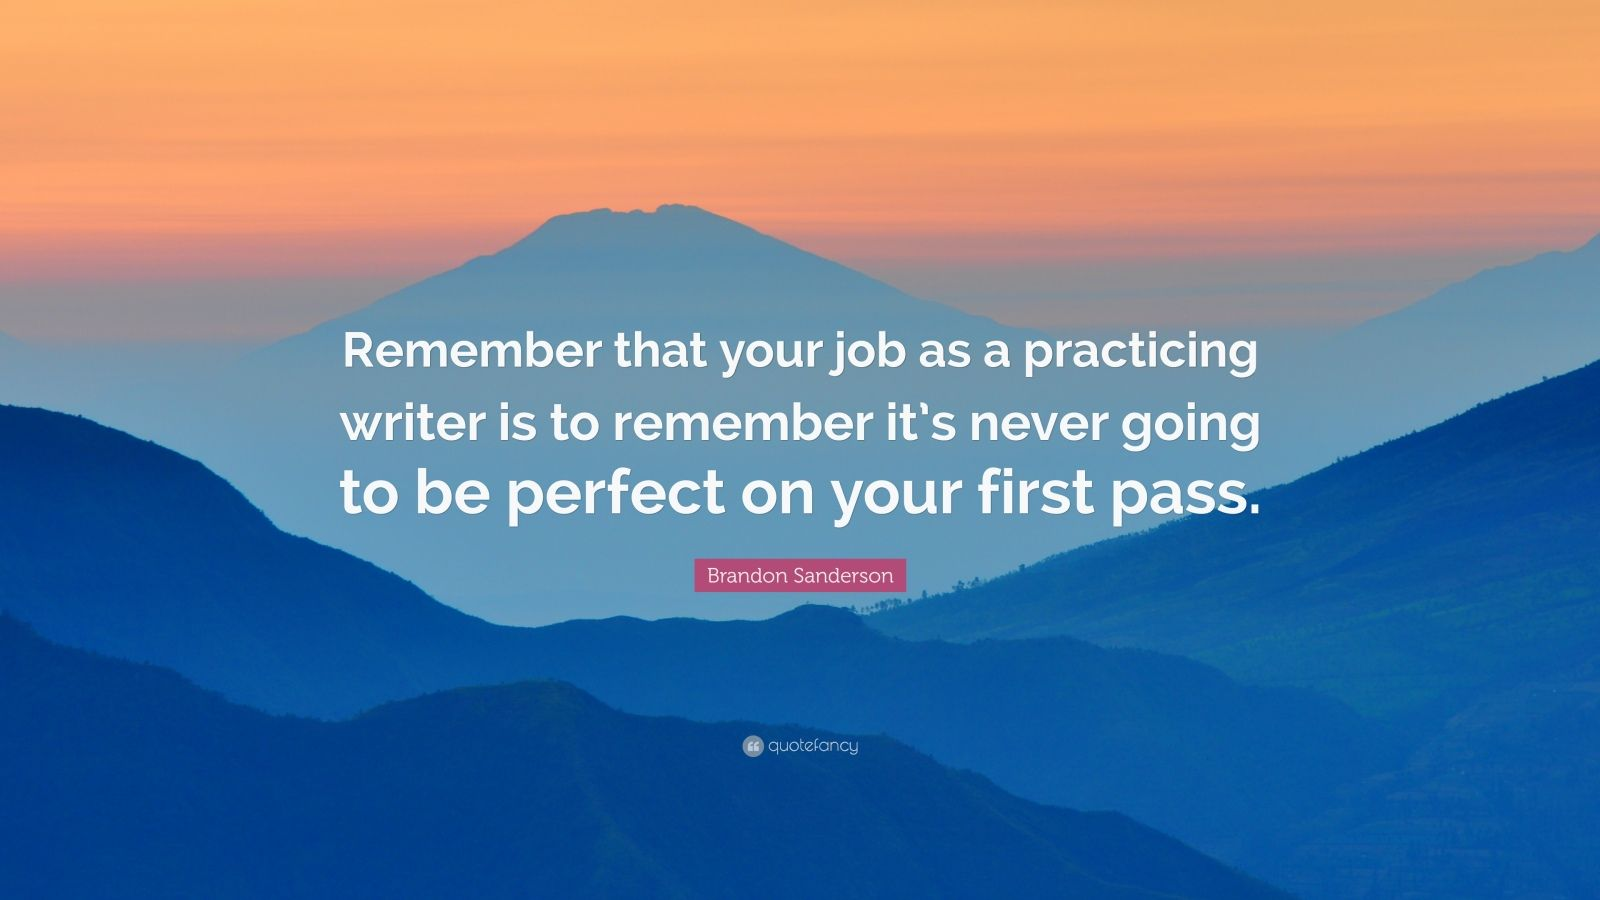 brandon sanderson quotes 100  brandon sanderson quote remember that your job as a practicing writer is to remember